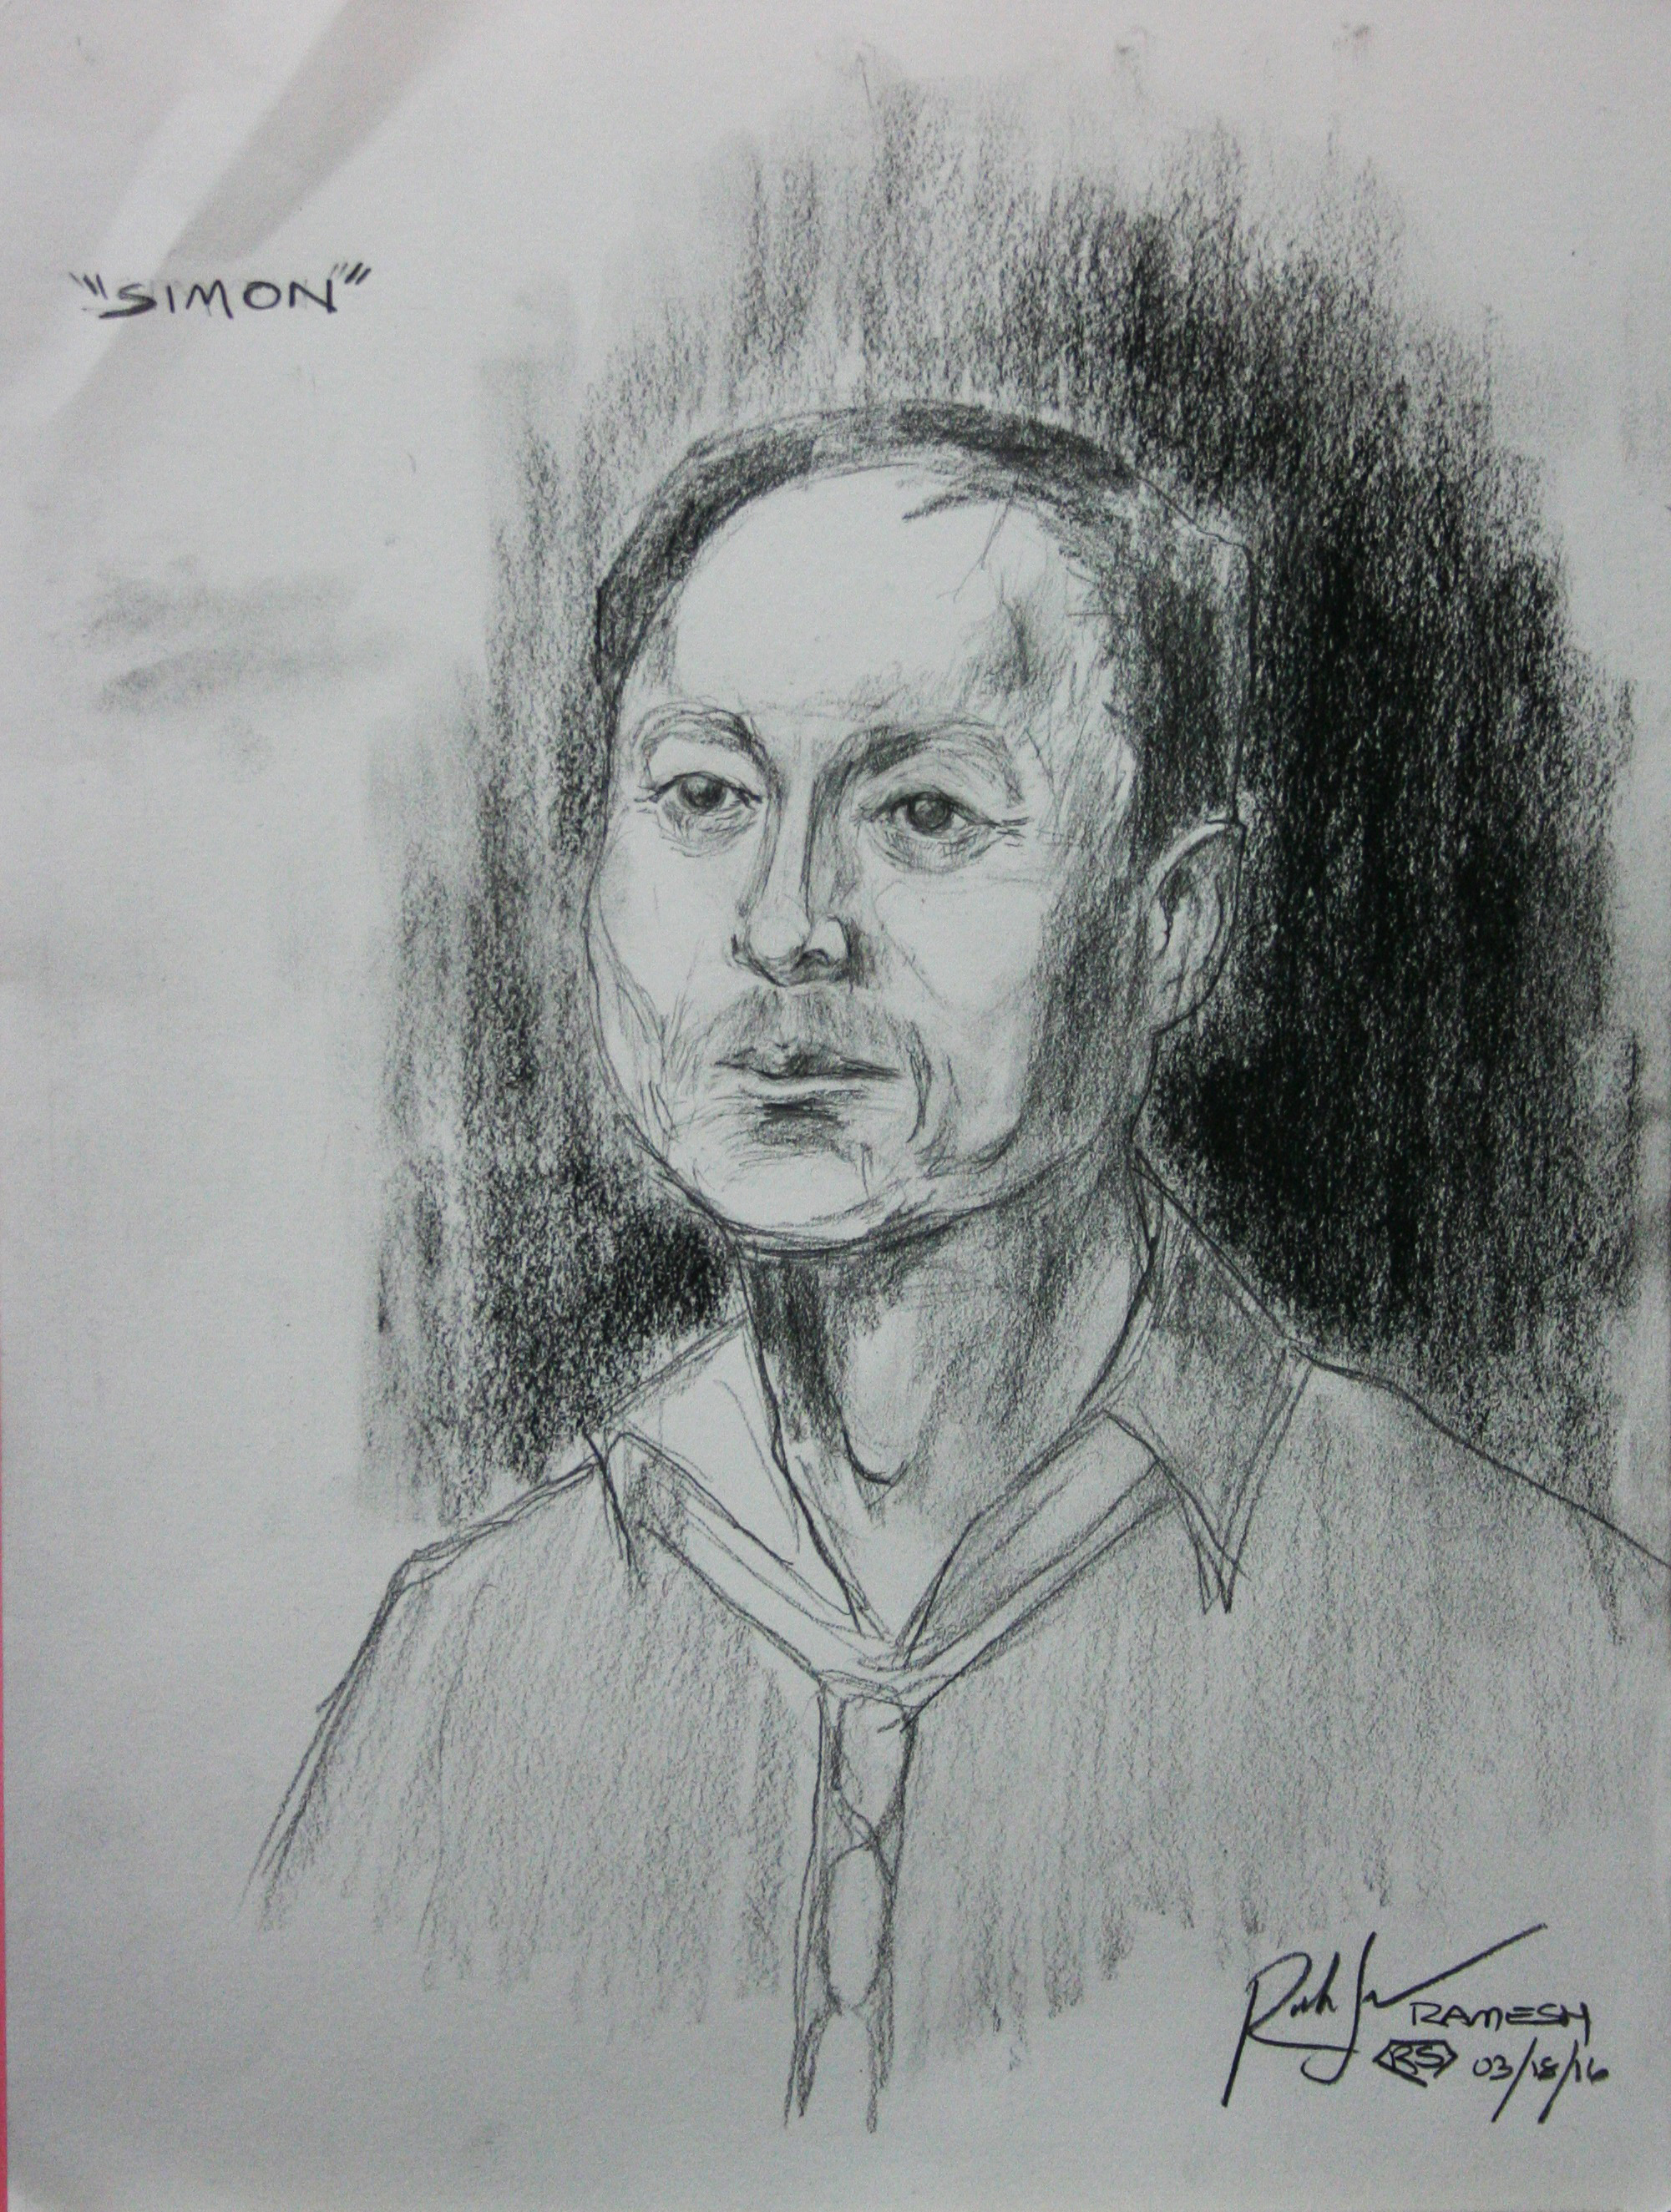 Ramesh Subramanium did this two hour drawing.